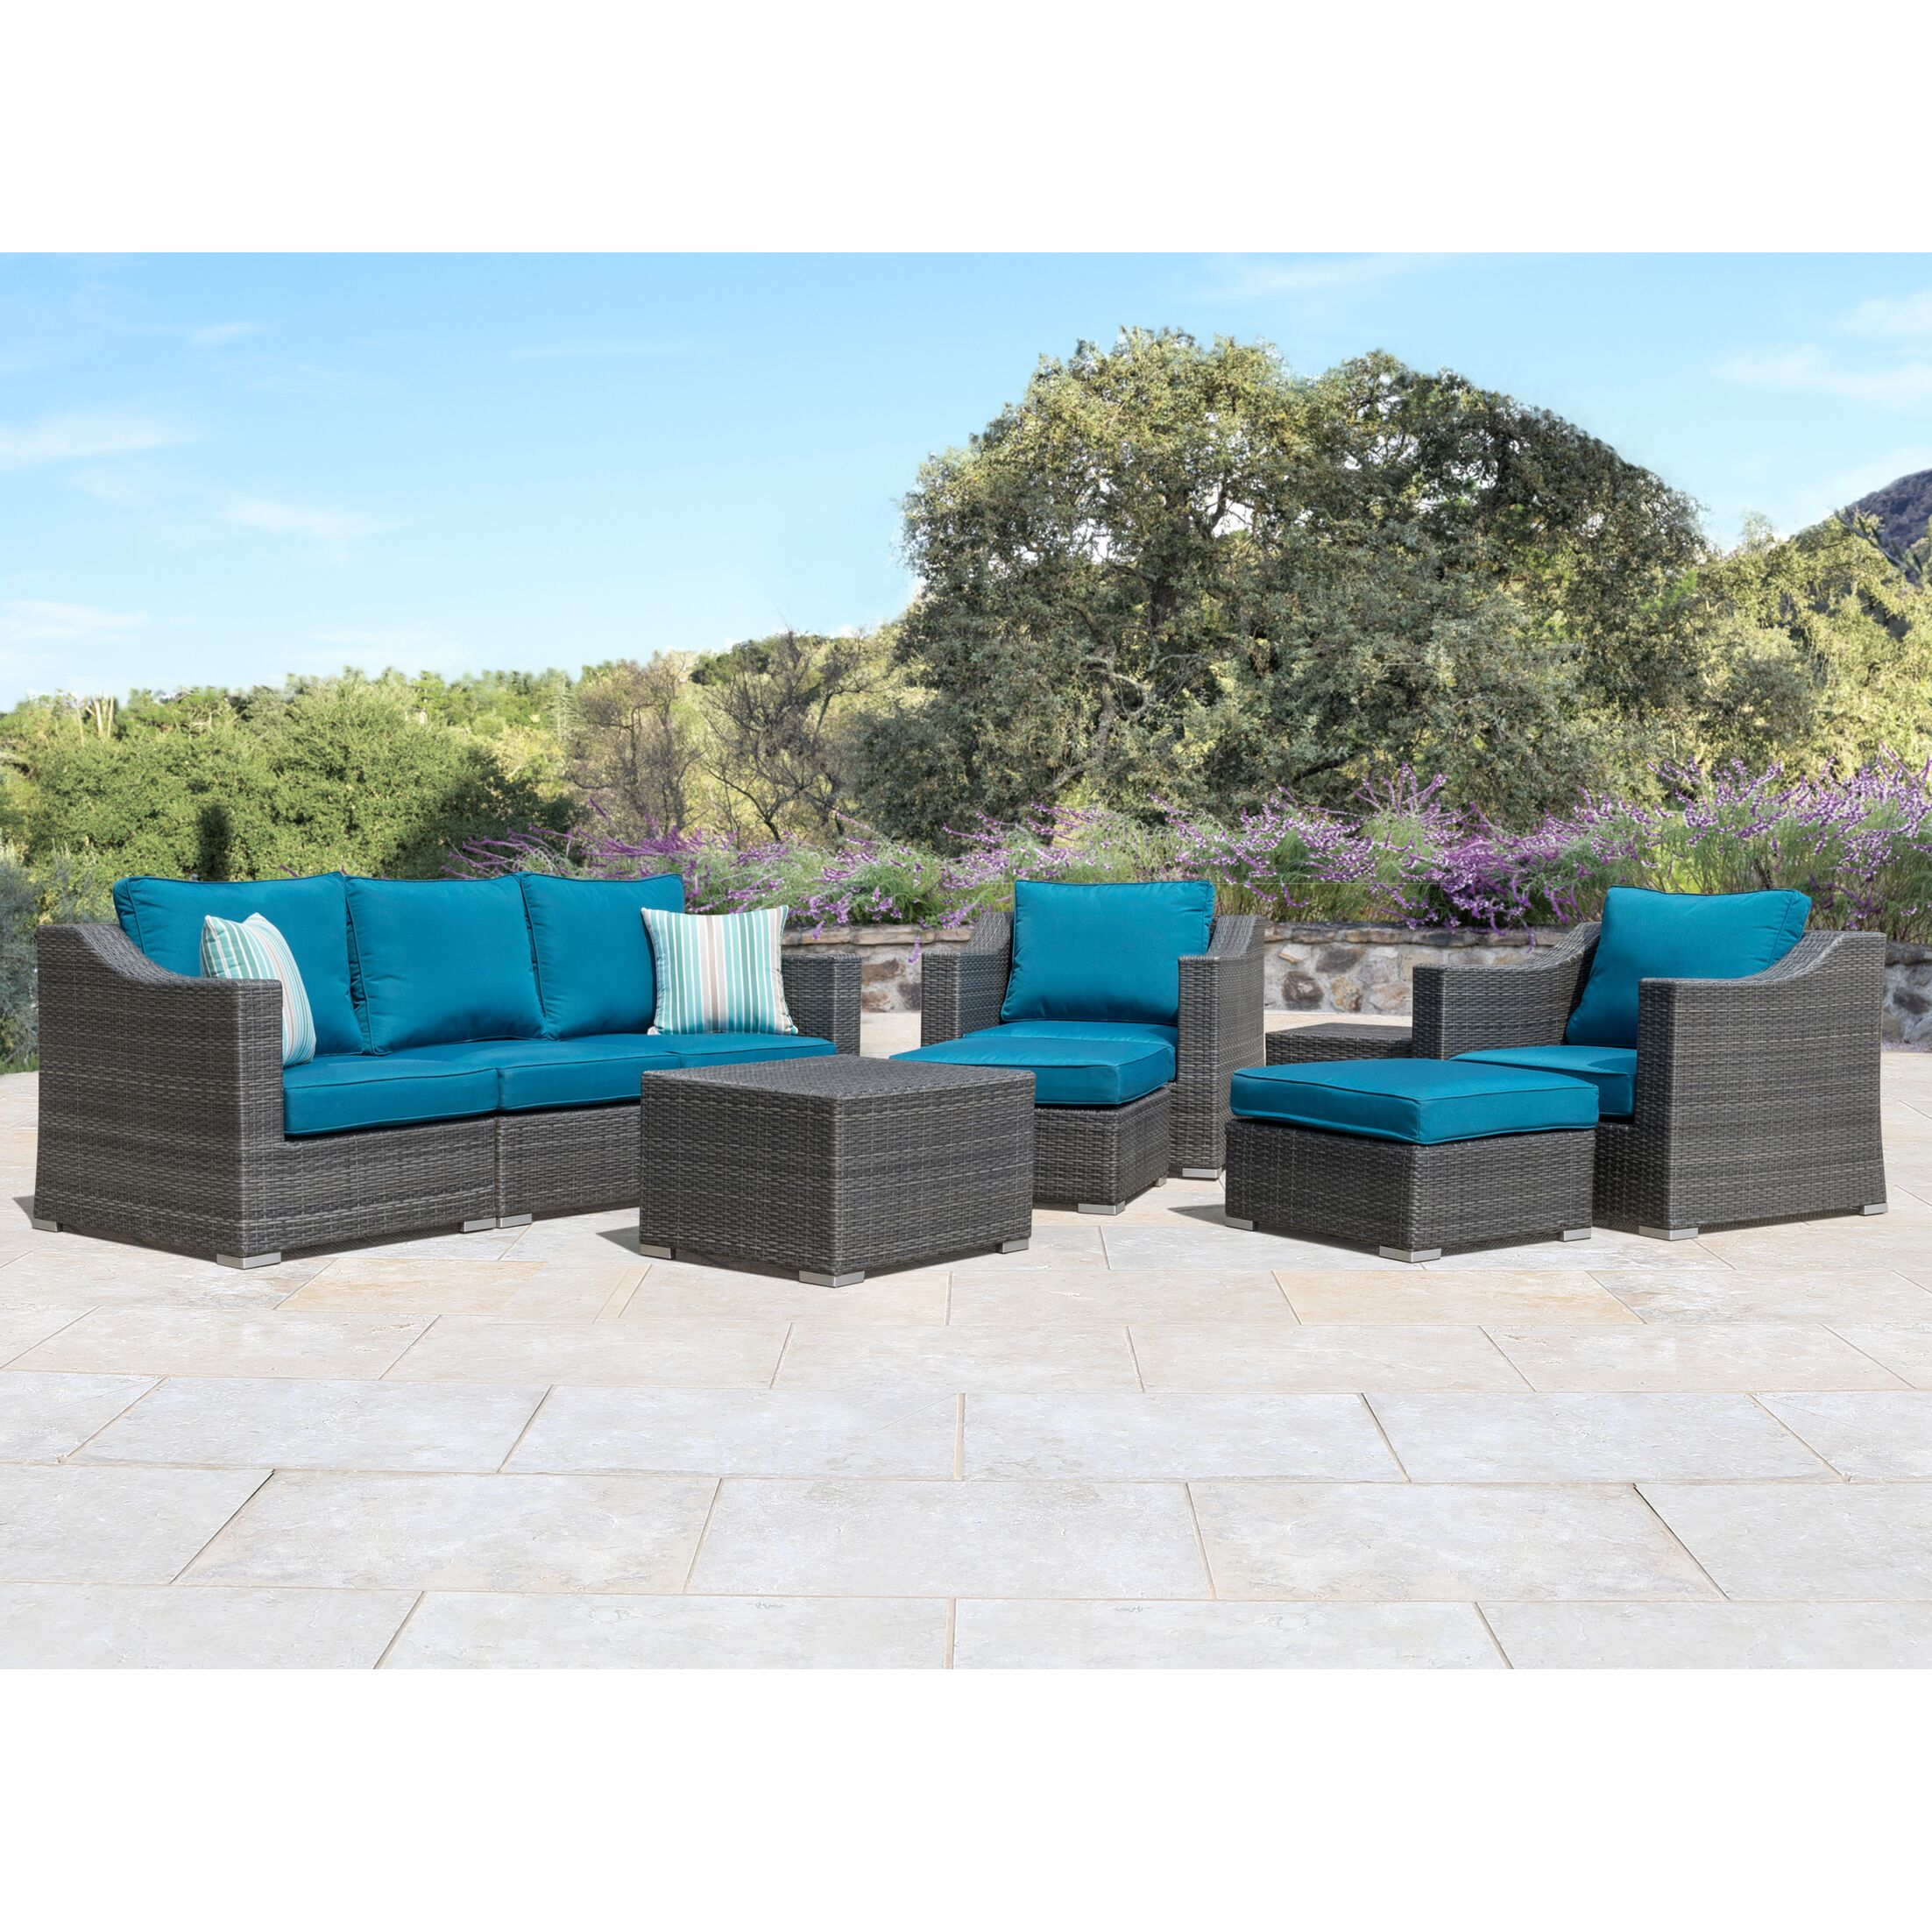 Castaneda 9 Piece Sectional Set with Cushions